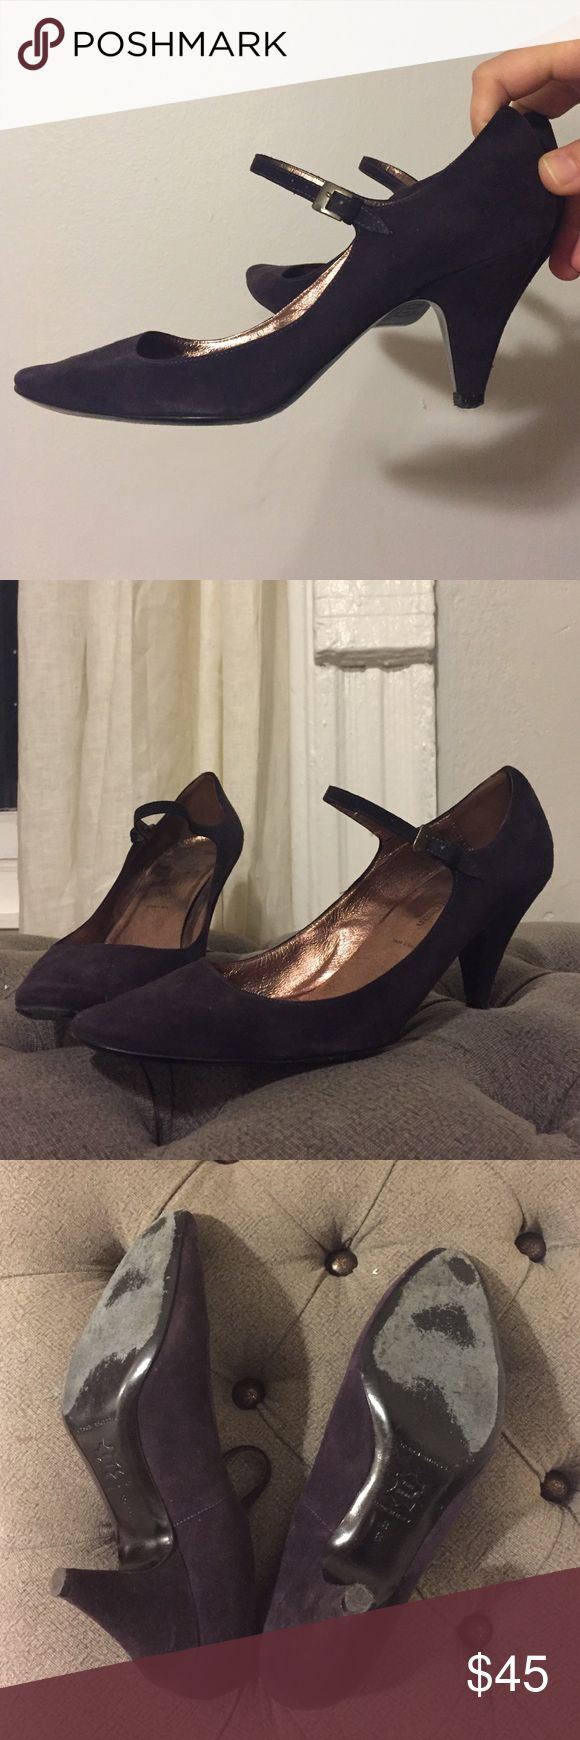 "Sigerson Morrison purple suede Mary Janes purple suede, 2 1/2"" heel. Good condition Sigerson Morrison Shoes Heels"